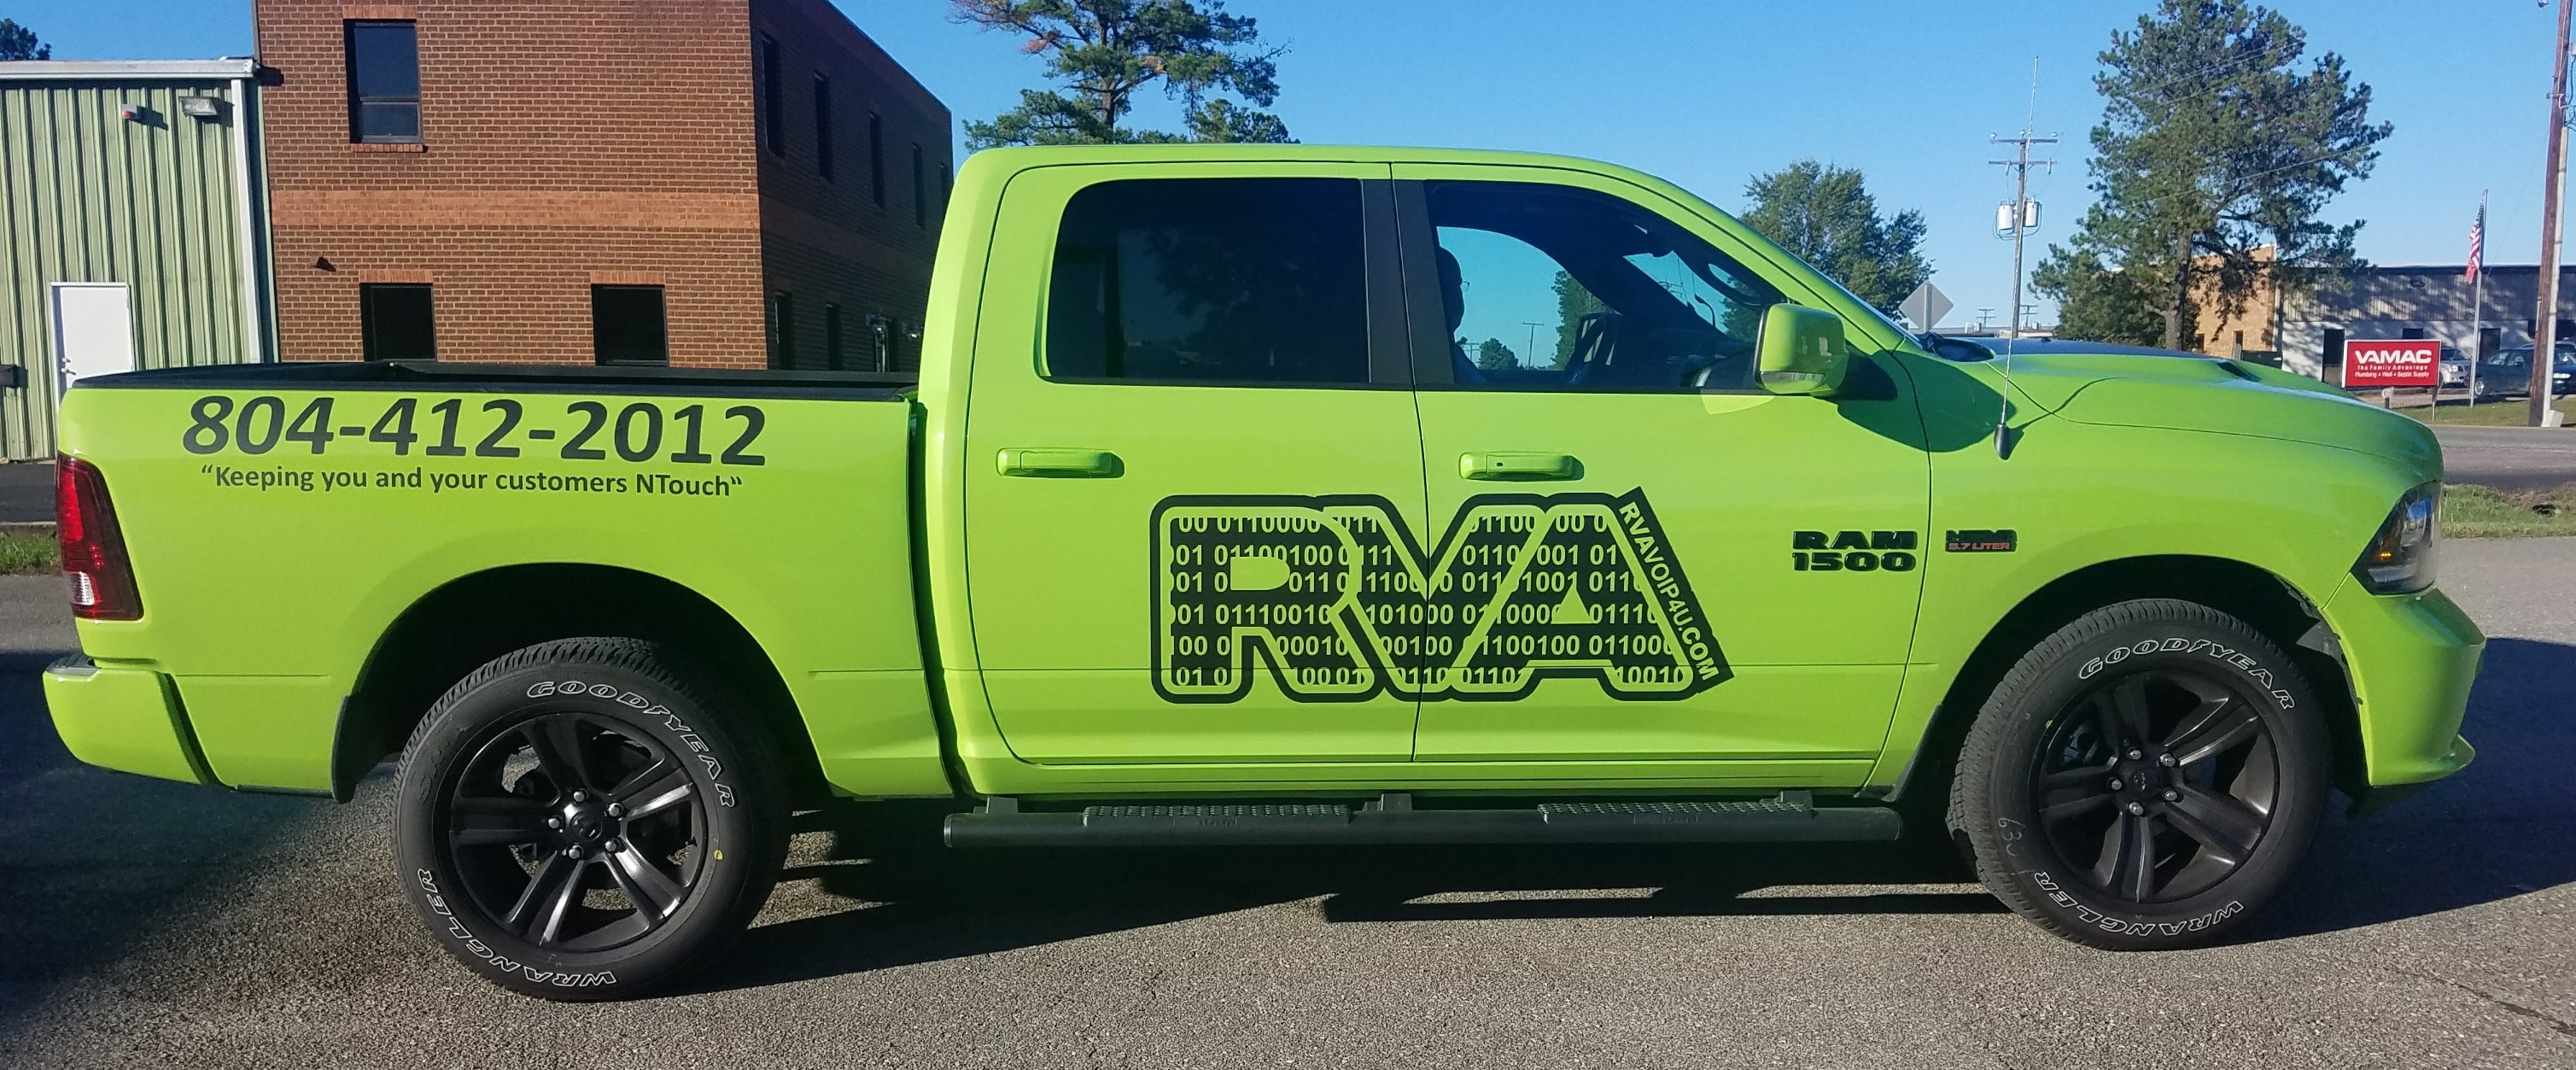 RVA Voip RAM Truck,  Richmond, Ashland, Mechanicsville, Glen Allen, Hanover, Henrico, Virginia